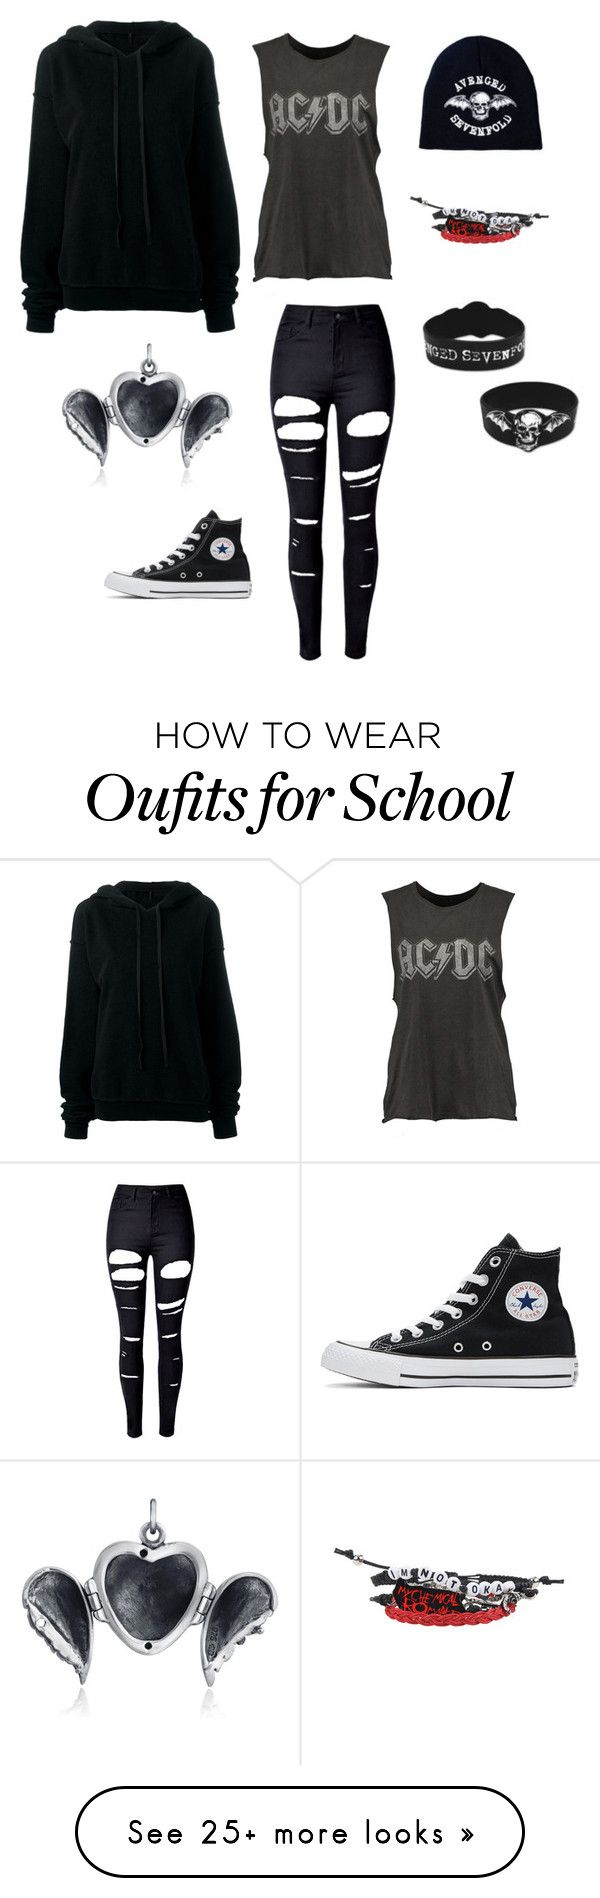 """""""At school"""" by ana-vivier on Polyvore featuring Hot Topic, WithChic, Converse, Unravel and Bling Jewelry"""